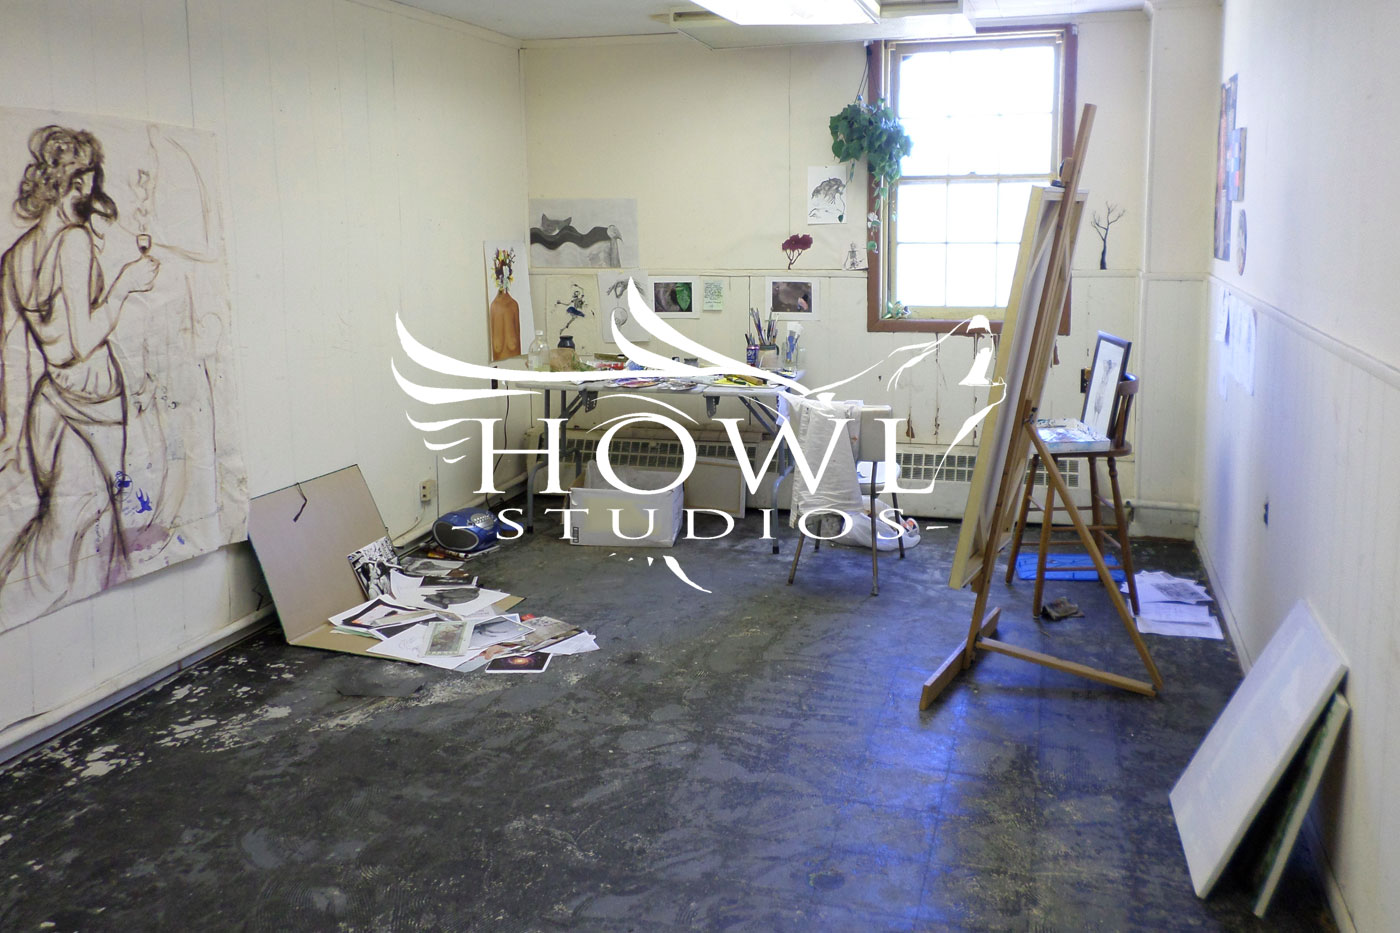 Welcome to Howl Studios - Art Studio and Rehearsal Spaces